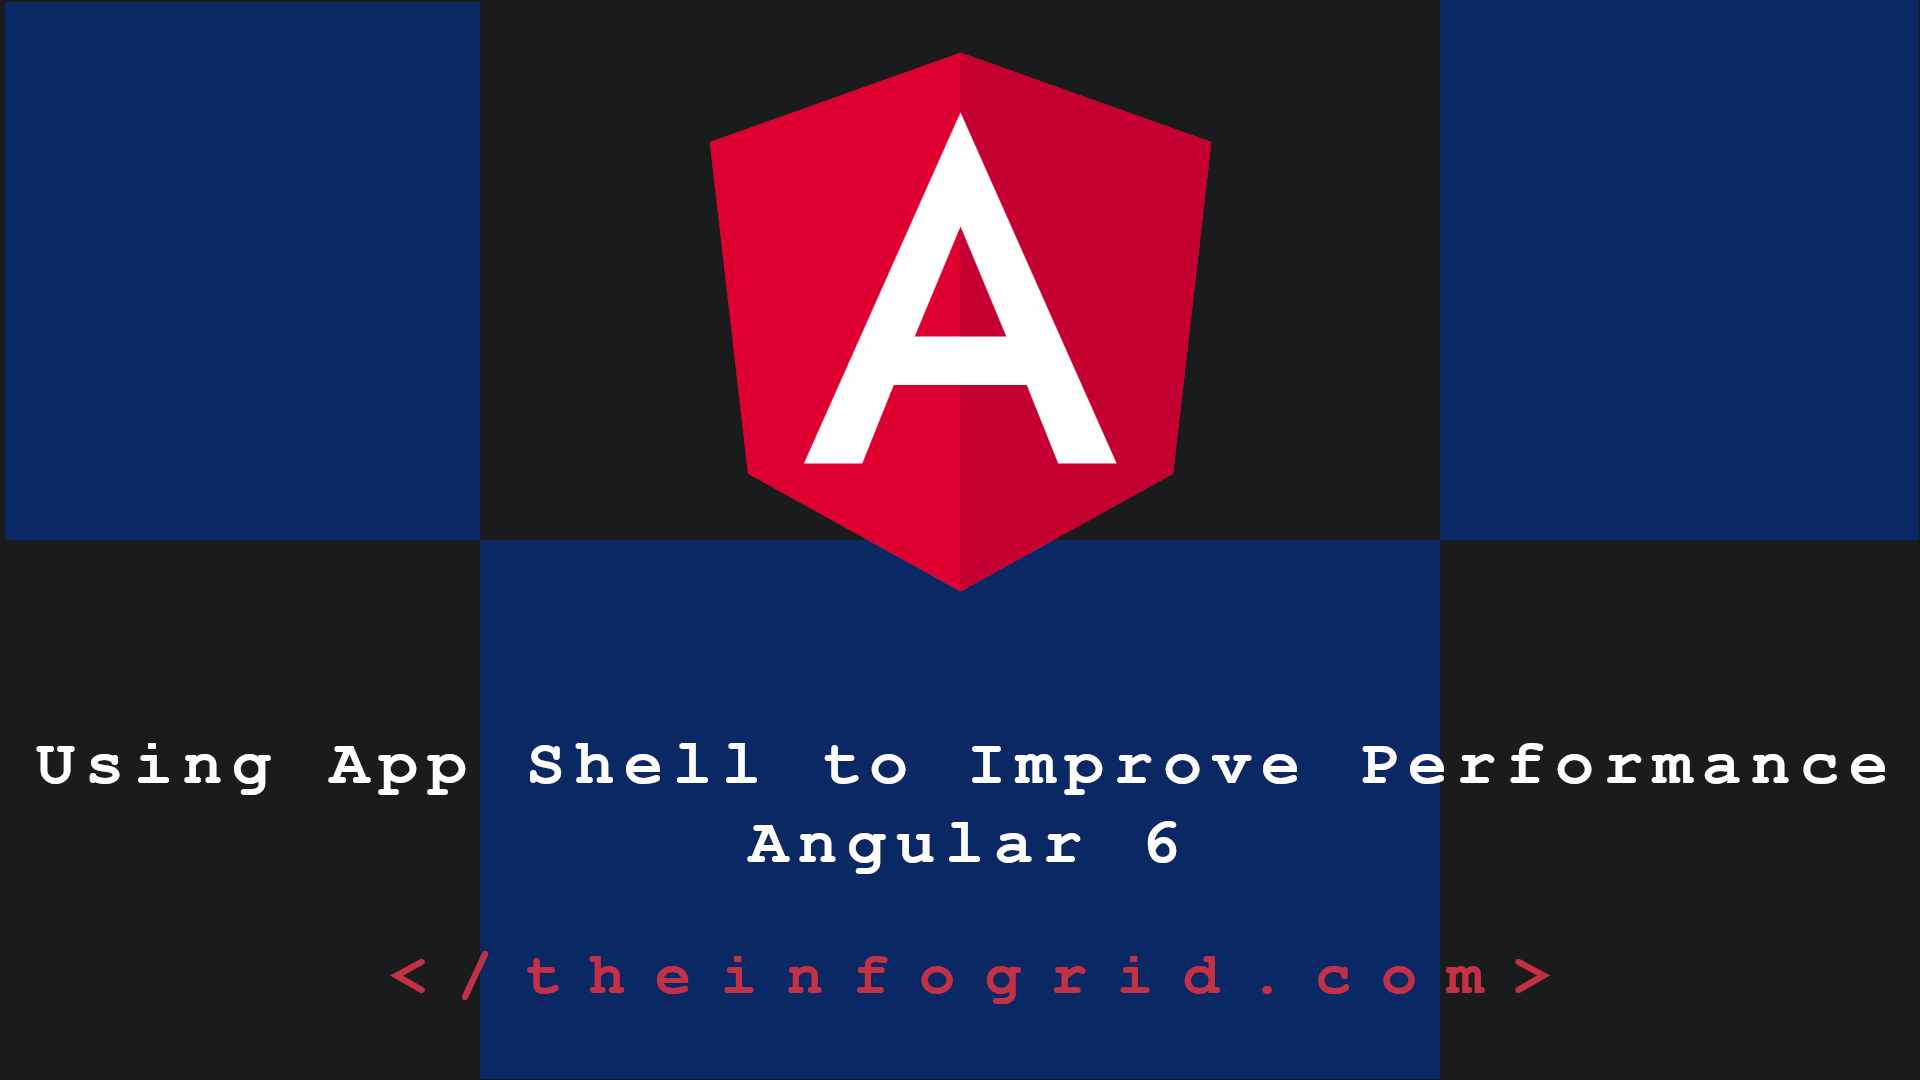 Using App Shell to Improve Performance – Angular 6